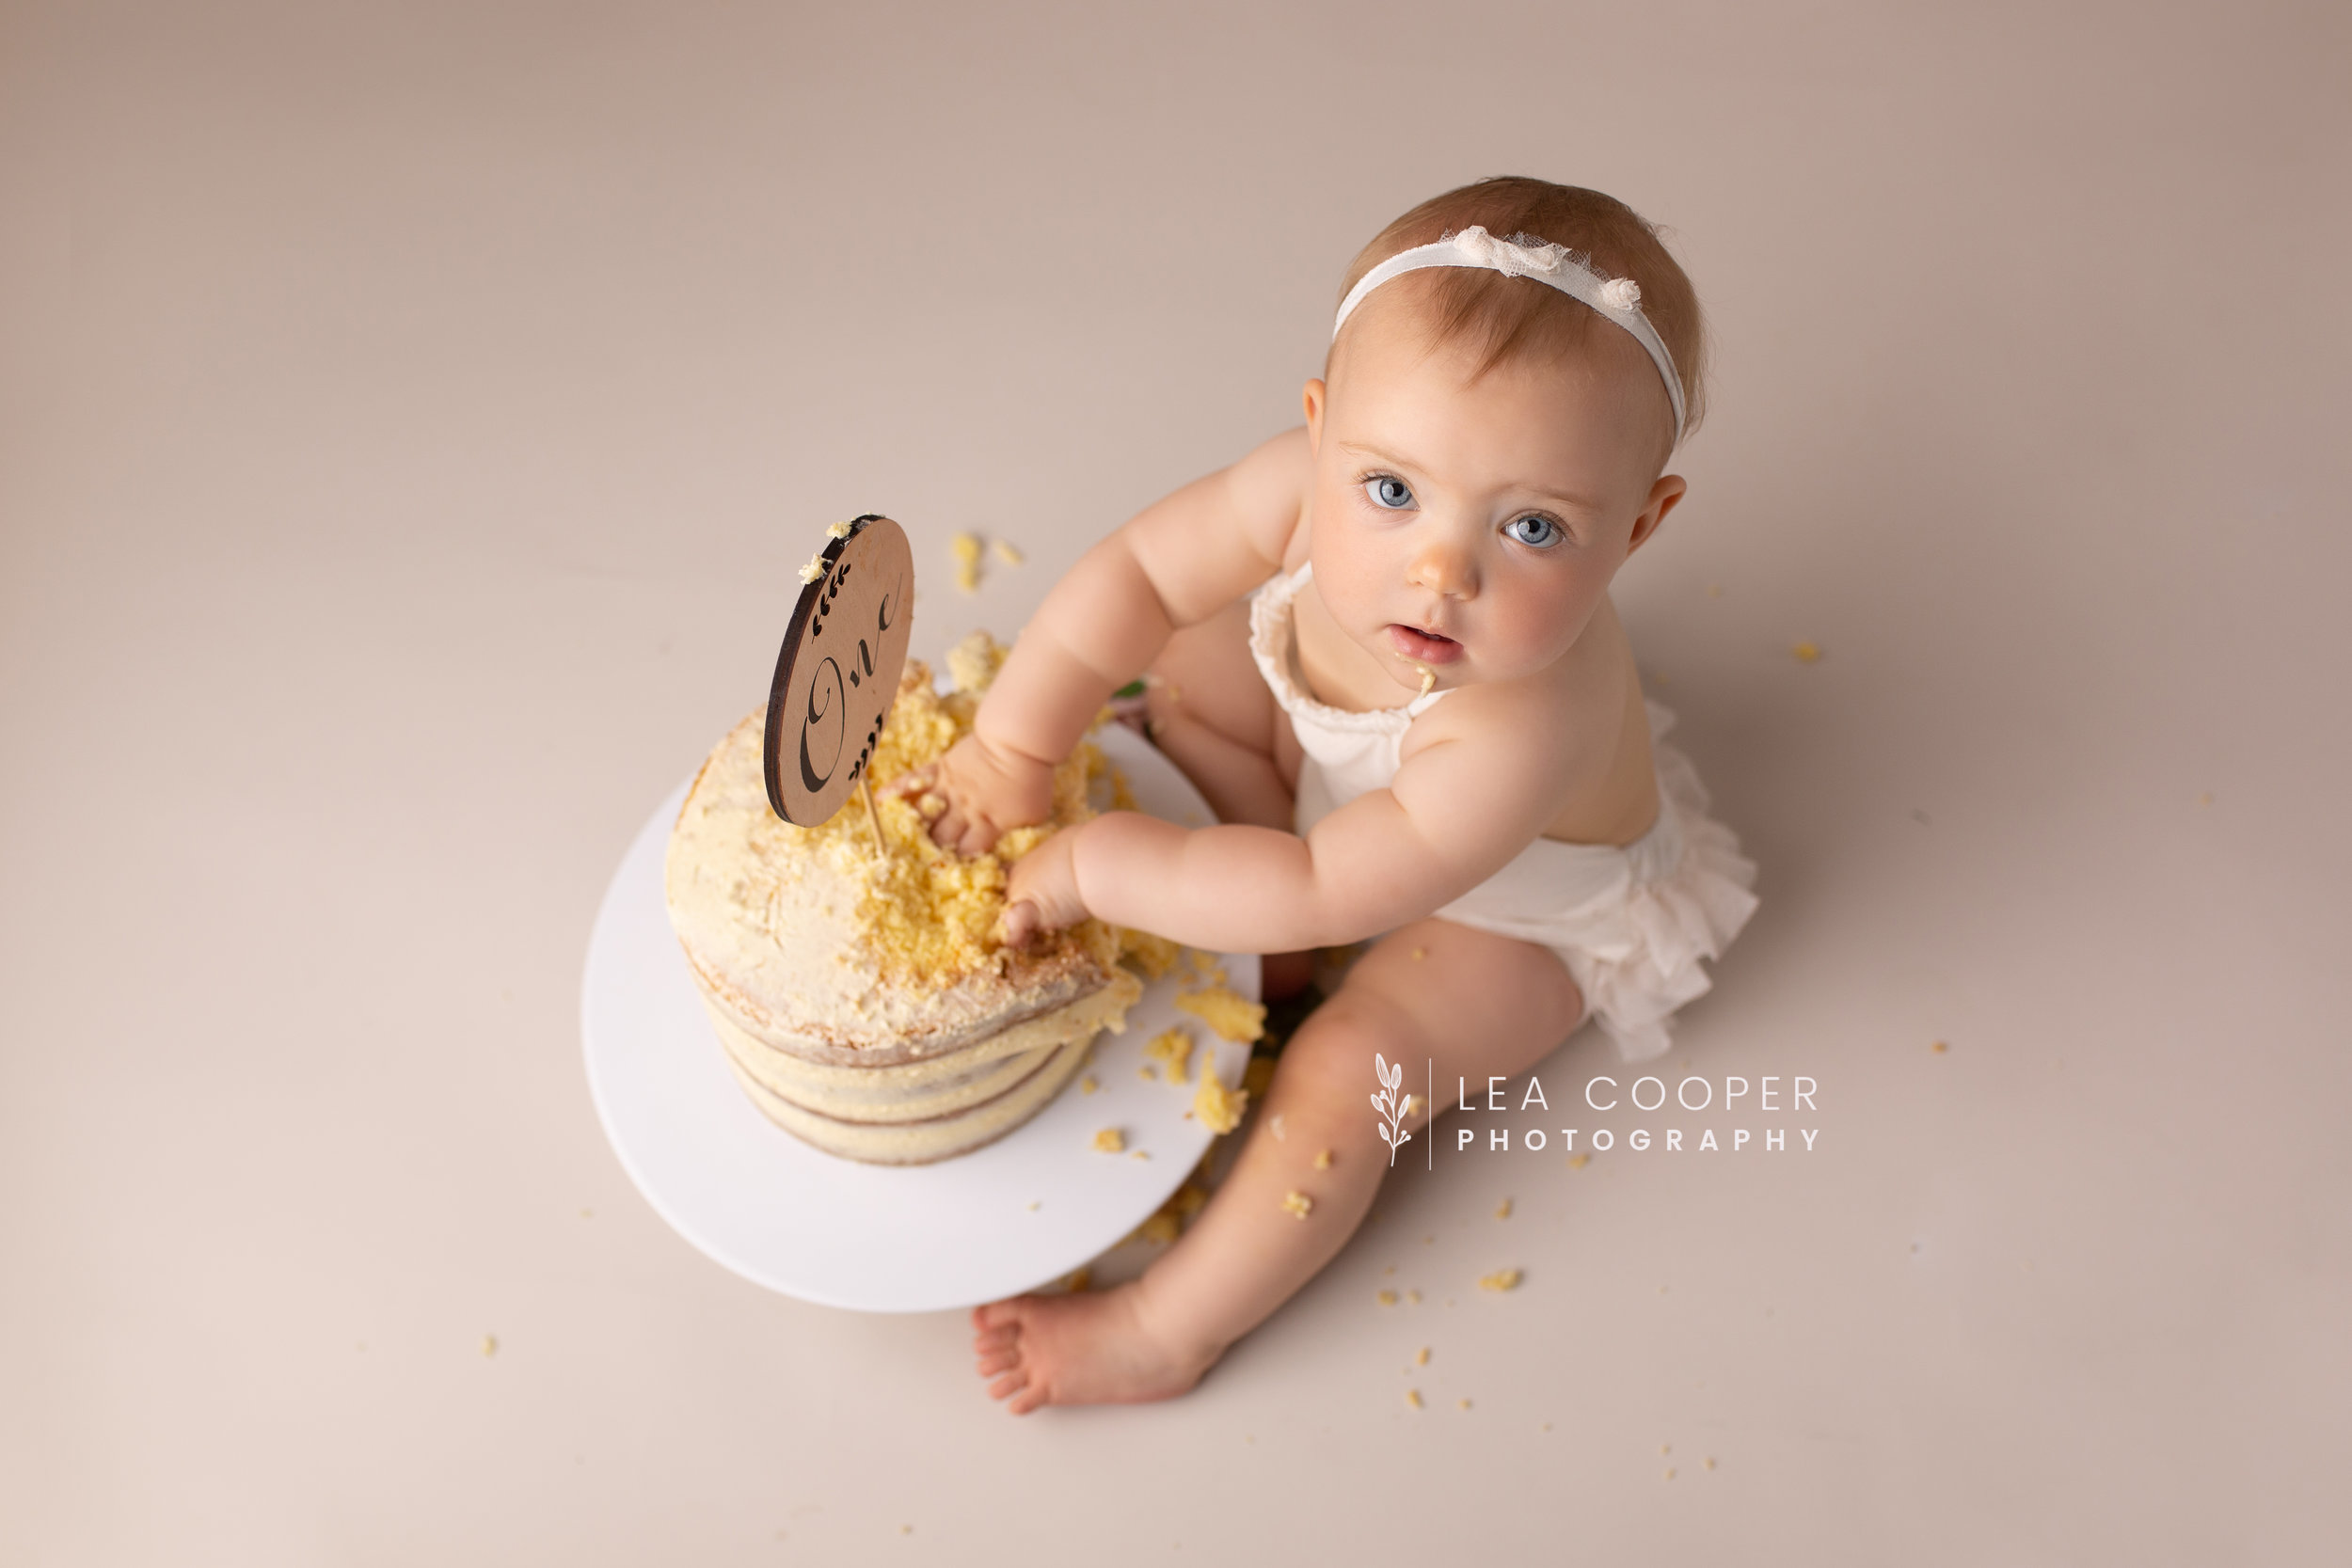 LEA-COOPER-PHOTOGRAPHY-CAKE-SMASH-SESSION-BIRTHDAY-PHOTOS-1ST-BIRTHDAY-SPLASH-SESSION-SMASH-SESSION-CHILDRENS-PHOTOGRAPHY-WILLENHALL-WOLVERHAMPTON-BIRMINGHAM-WEST-MIDLANDS-UK-8.jpg